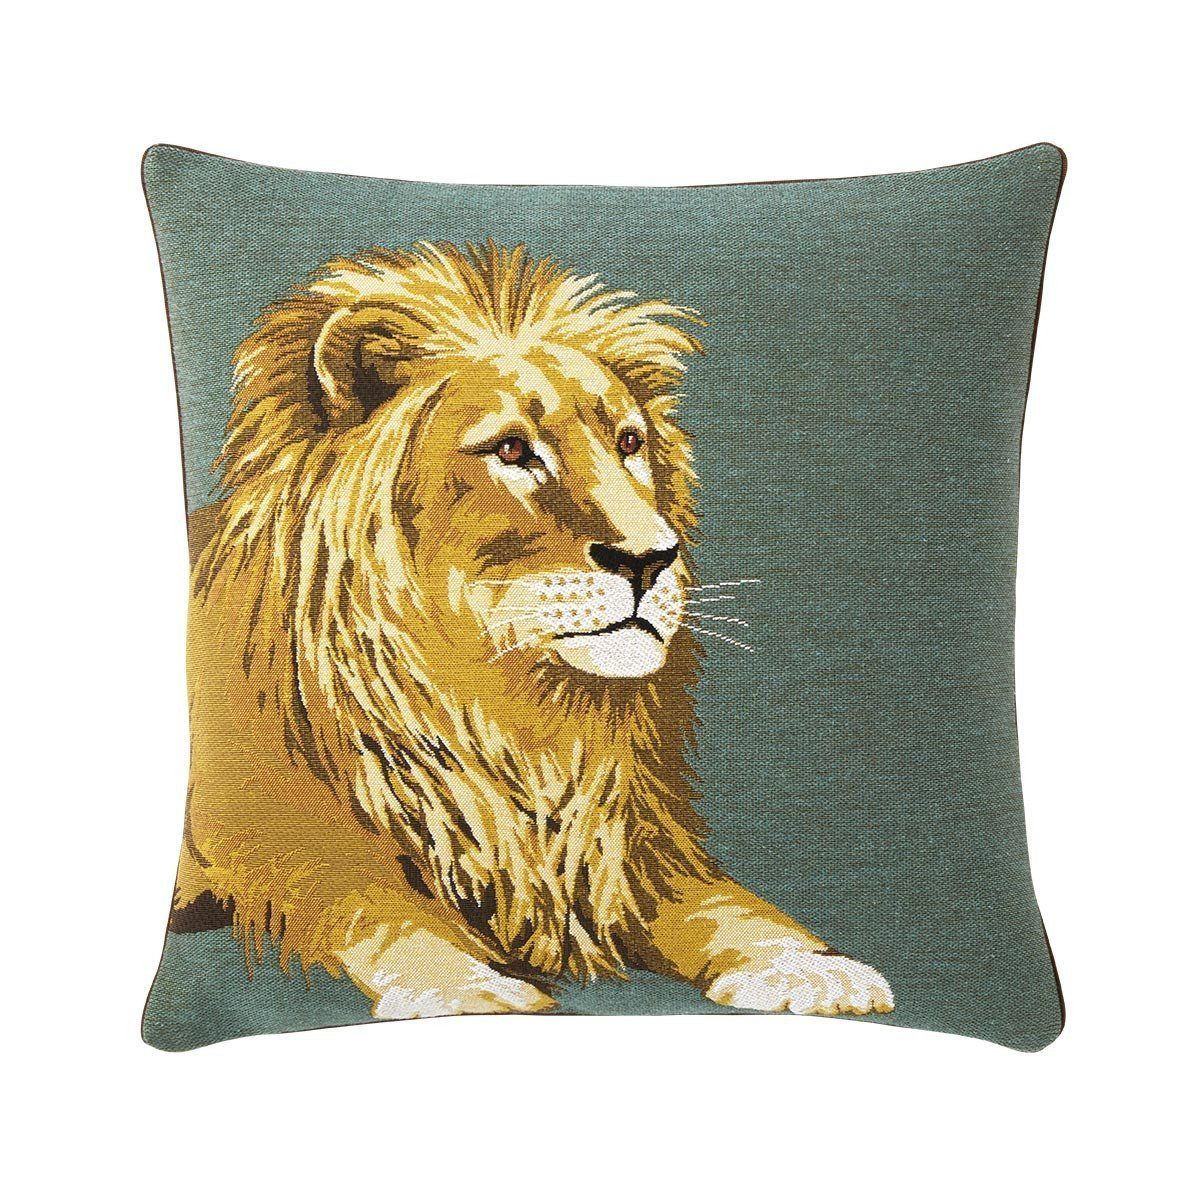 Leonis Savane Decorative Pillow by Iosis